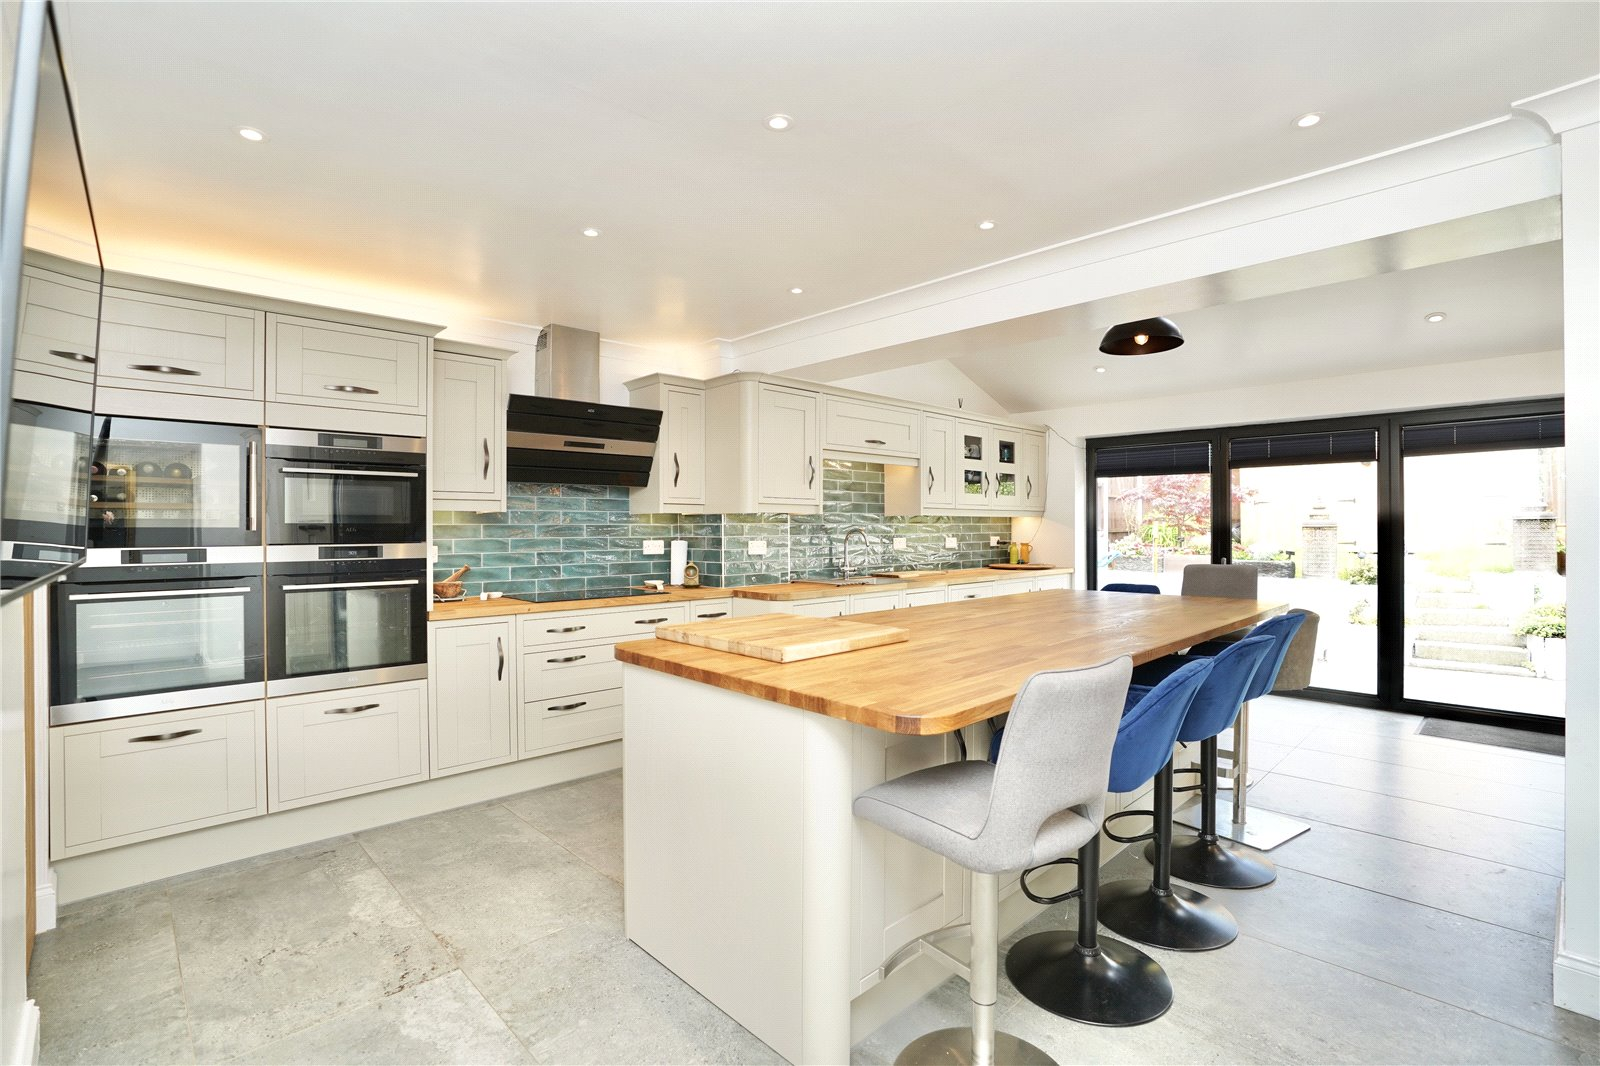 5 bed house for sale in Laxton Close, Eaton Ford, PE19